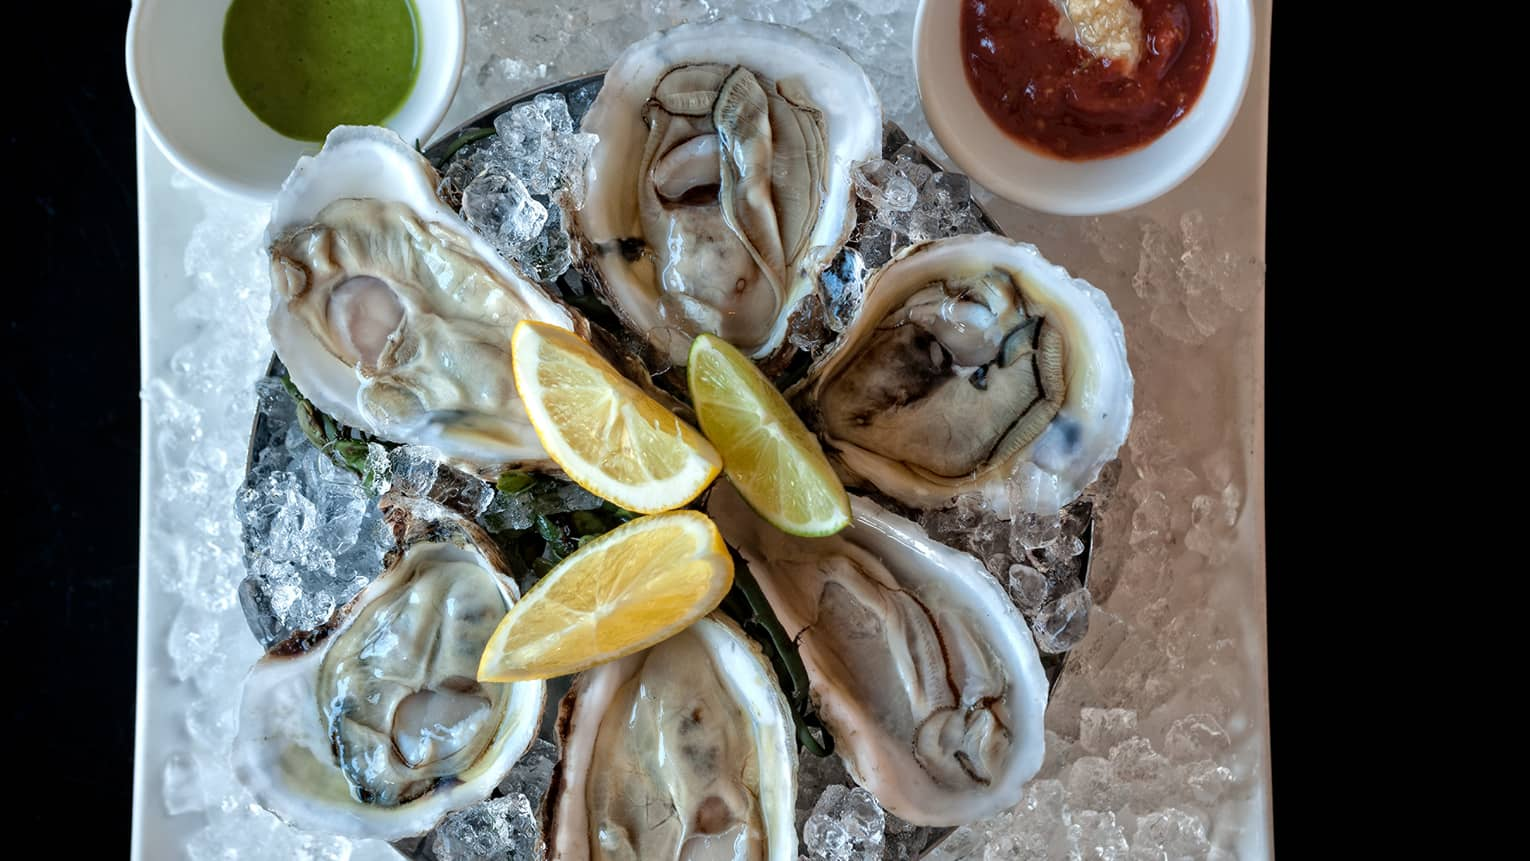 Close-up of platter of fresh oysters in half shells on ice with three lemon wedges in centre, sauce in small bowls